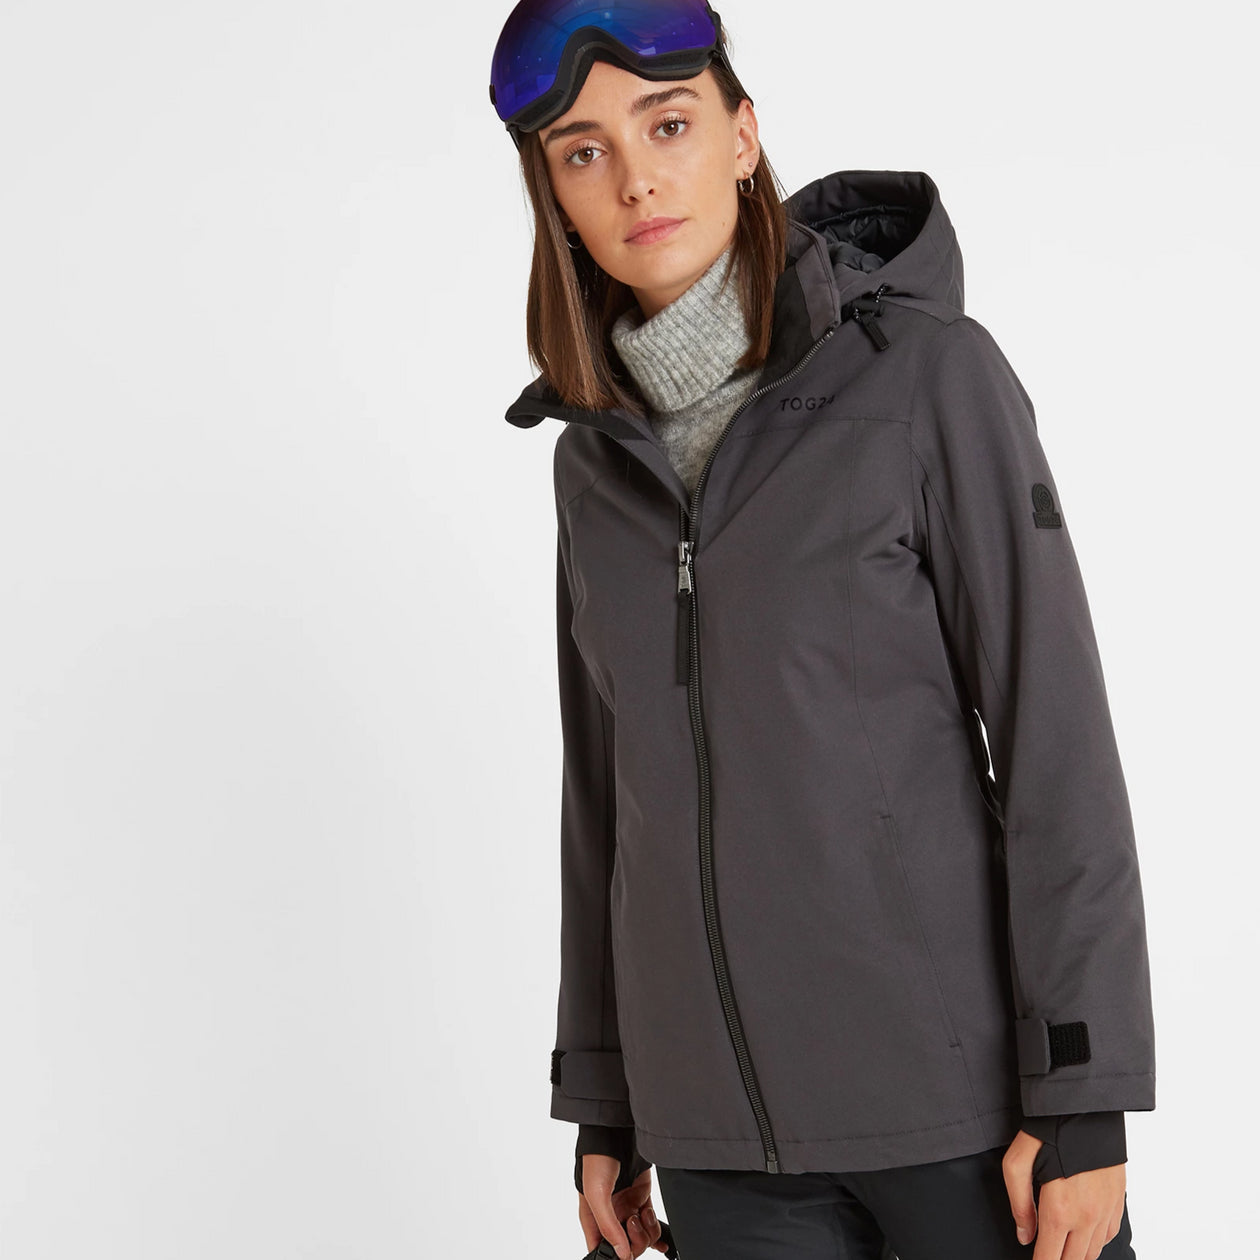 Cawood Womens Ski Jacket - Coal Grey image 4